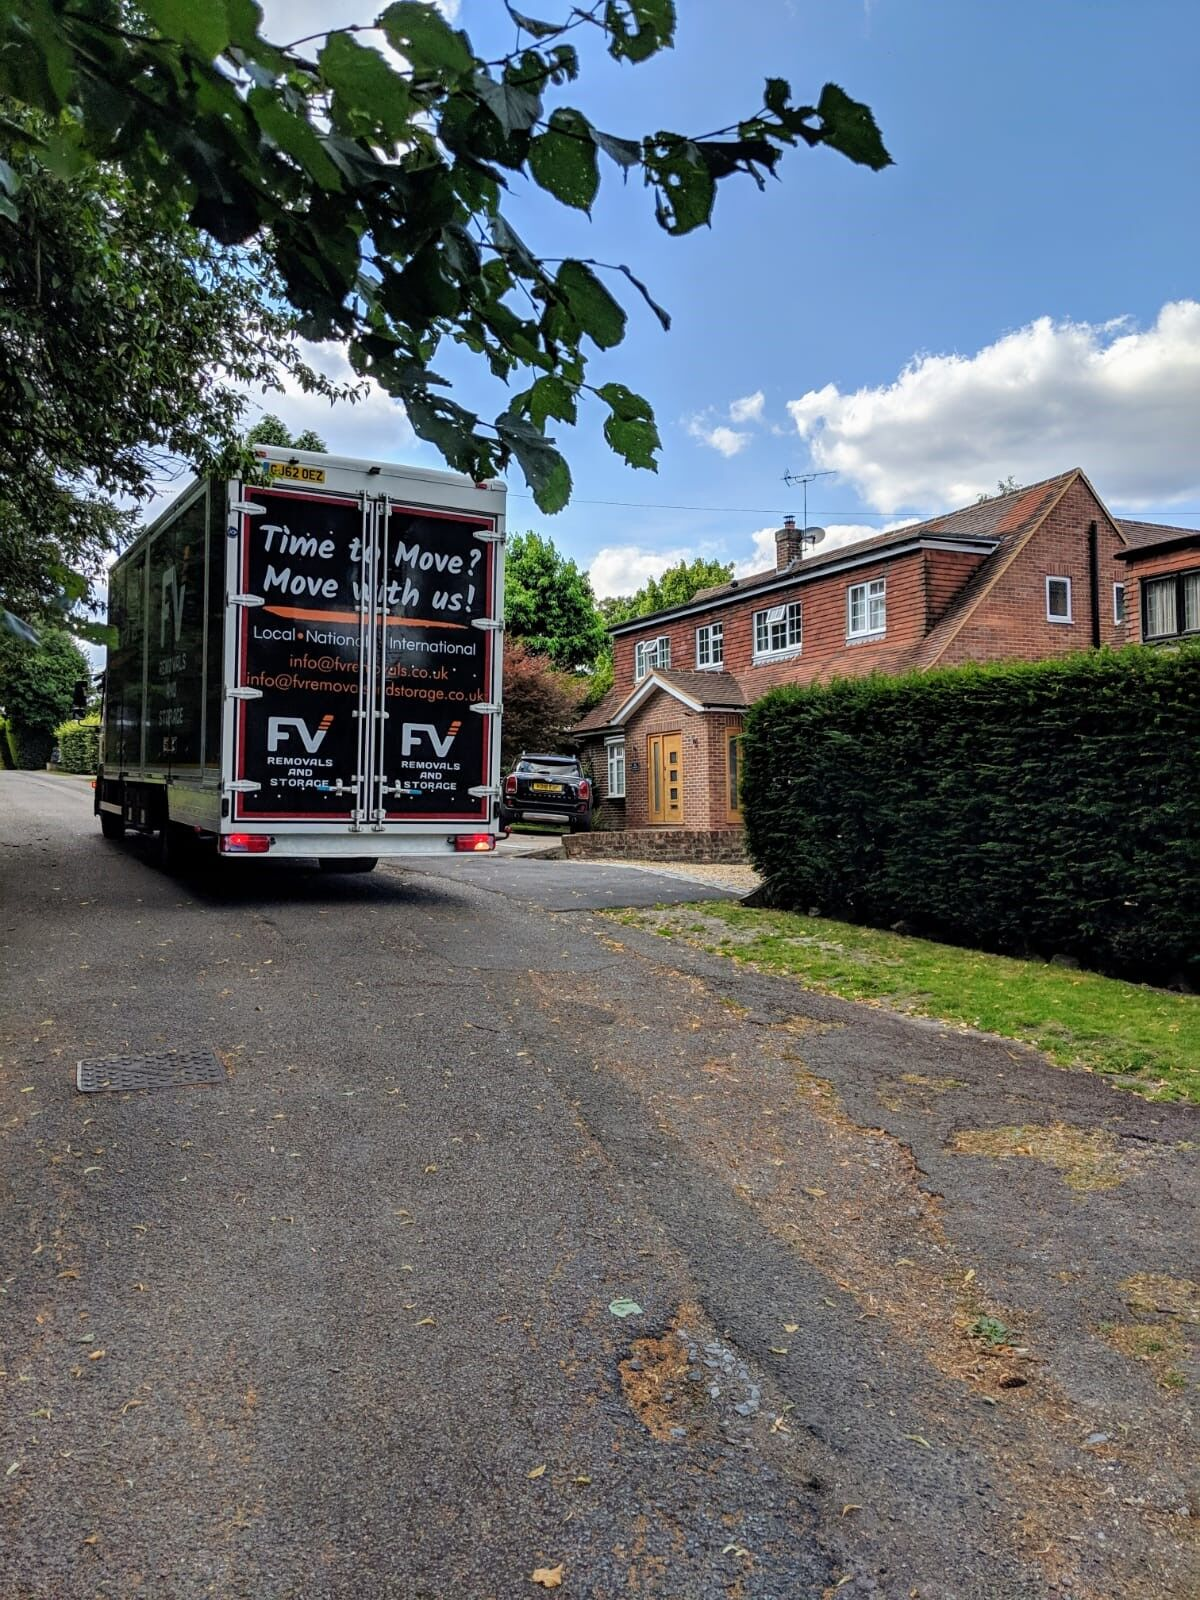 Home FV Removals